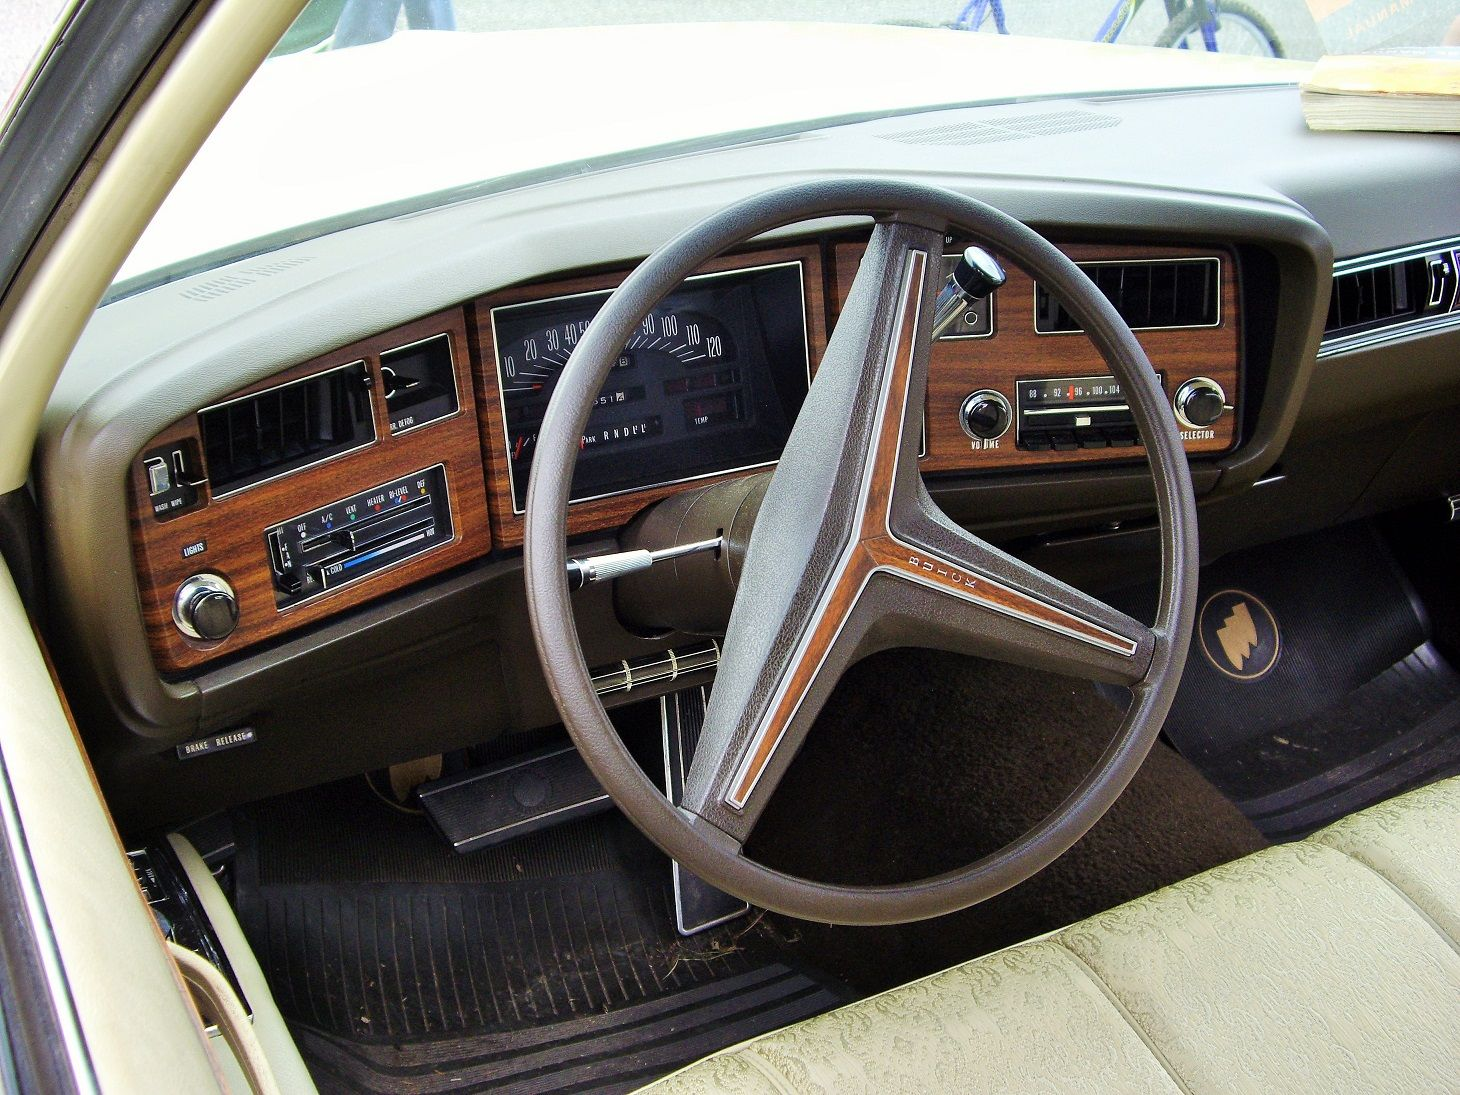 Car interior maintenance - 1973 Buick Electra 225 Interior Maintenance Restoration Of Old Vintage Vehicles The Material